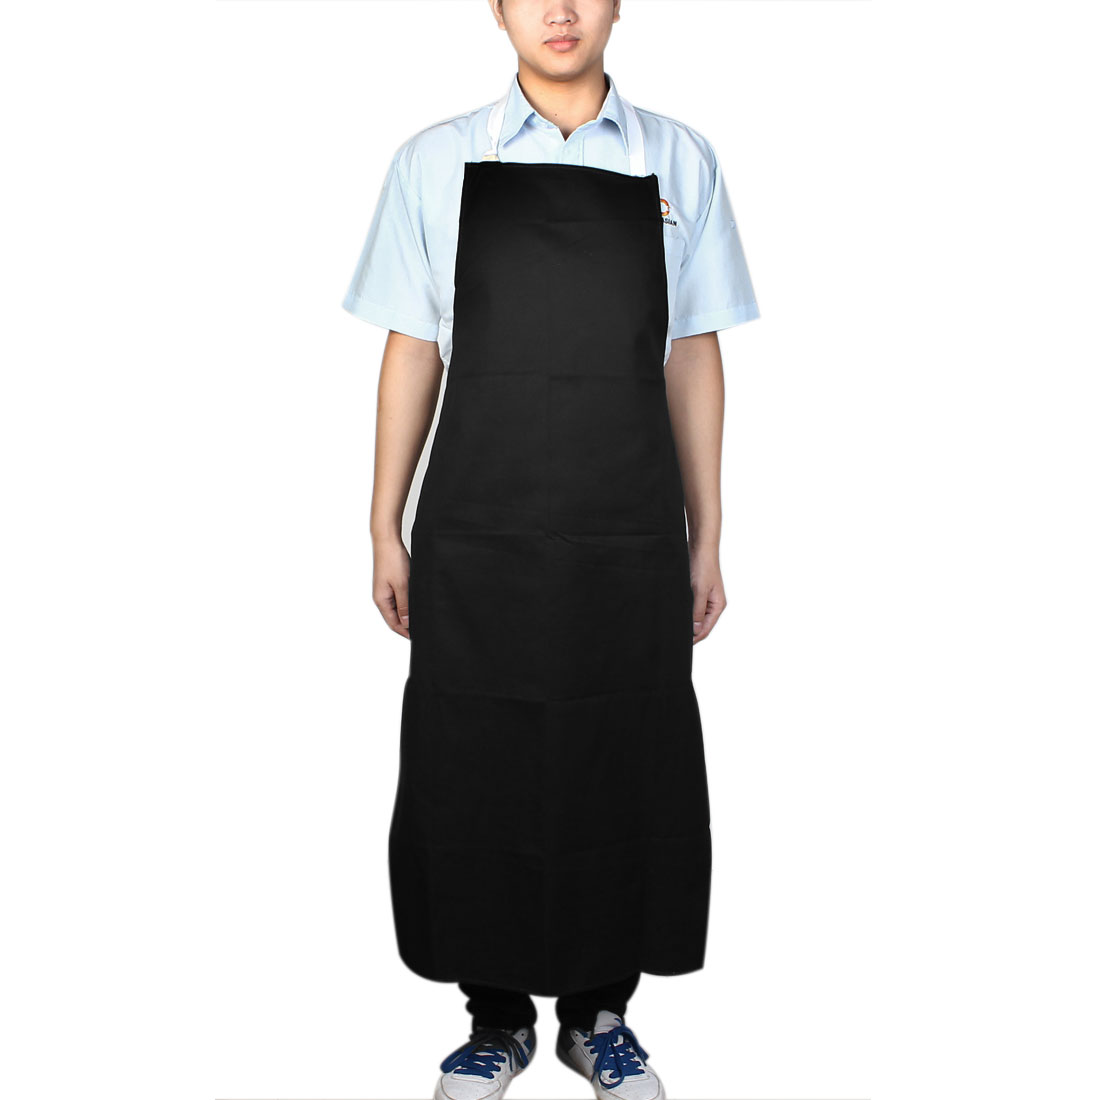 Kitchen Single Pocket Front Nylon Self Tie Bib Apron Dark Blue